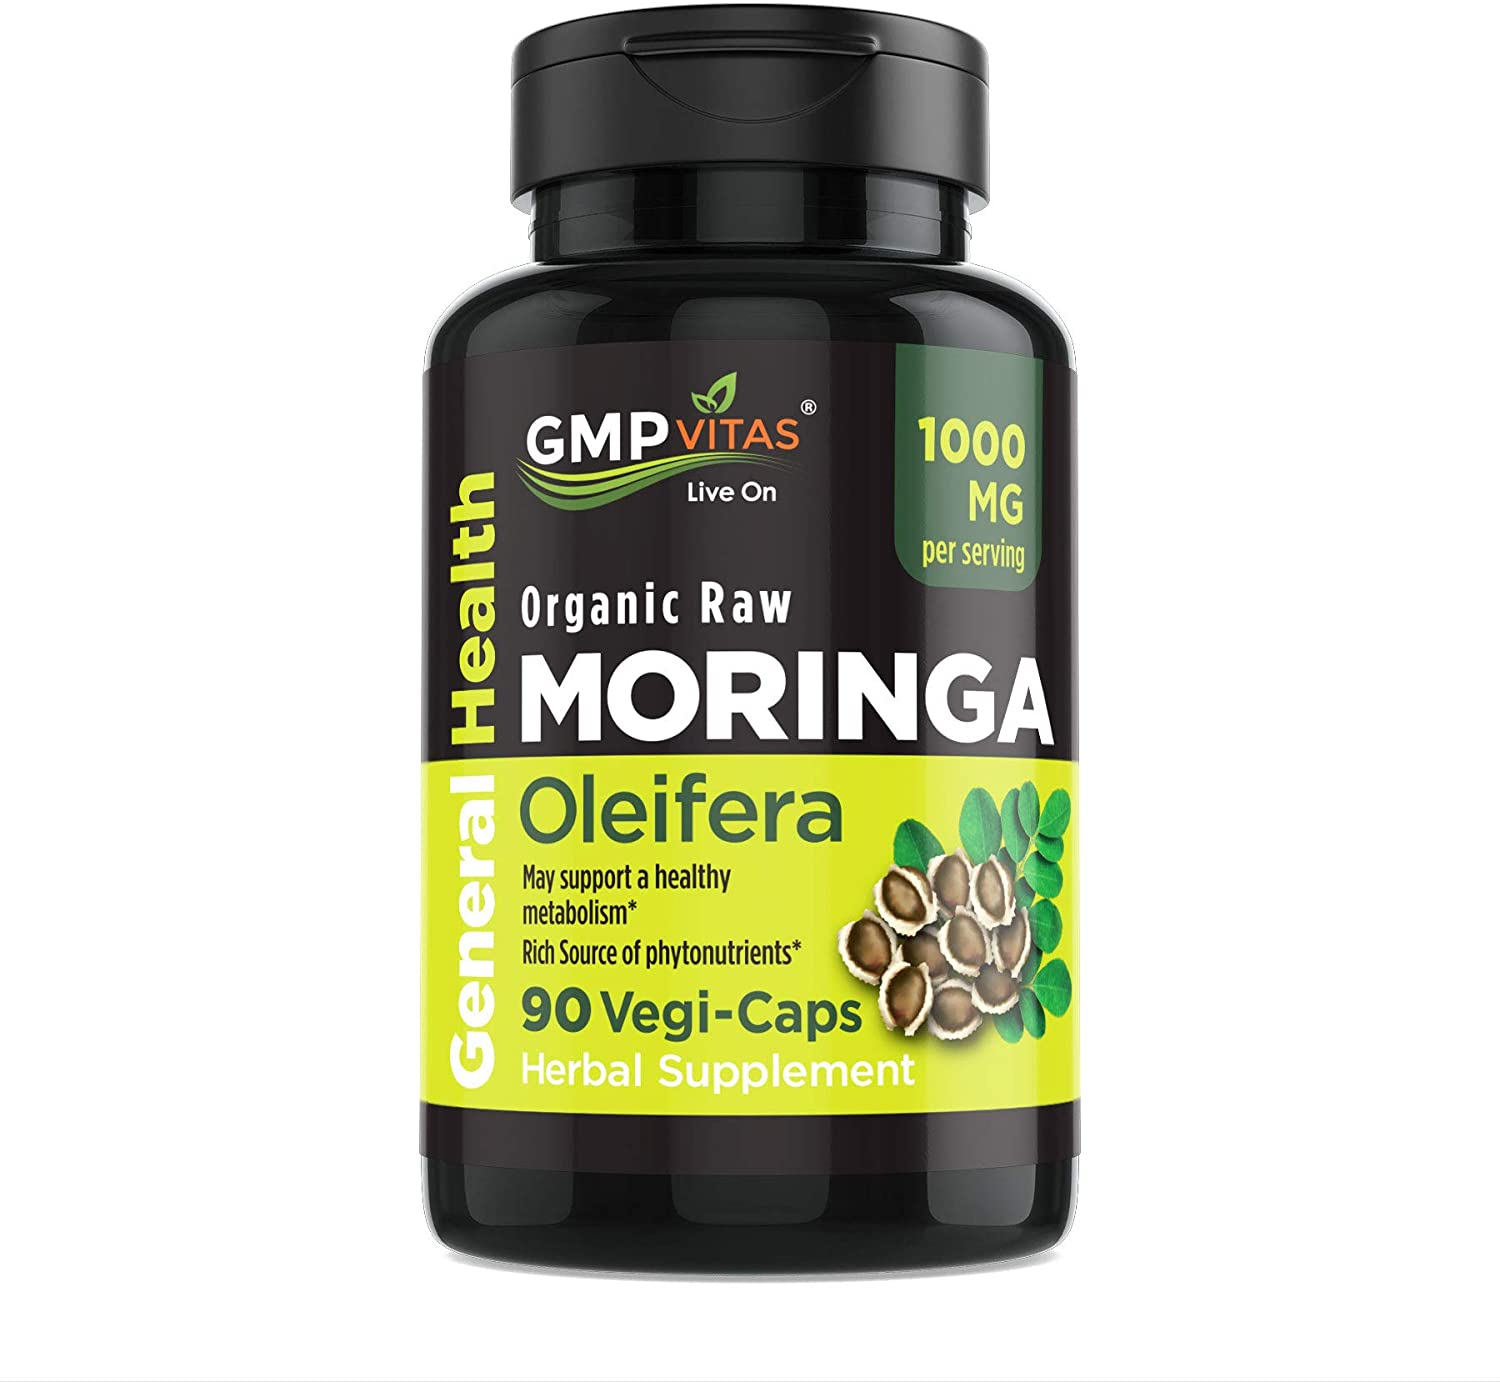 GMP Vitas® Organic Moringa Oleifera Non-GMO 1000 mg 90 Vegetarian Capsules Rich Source of Essential Vitamins & Proteins